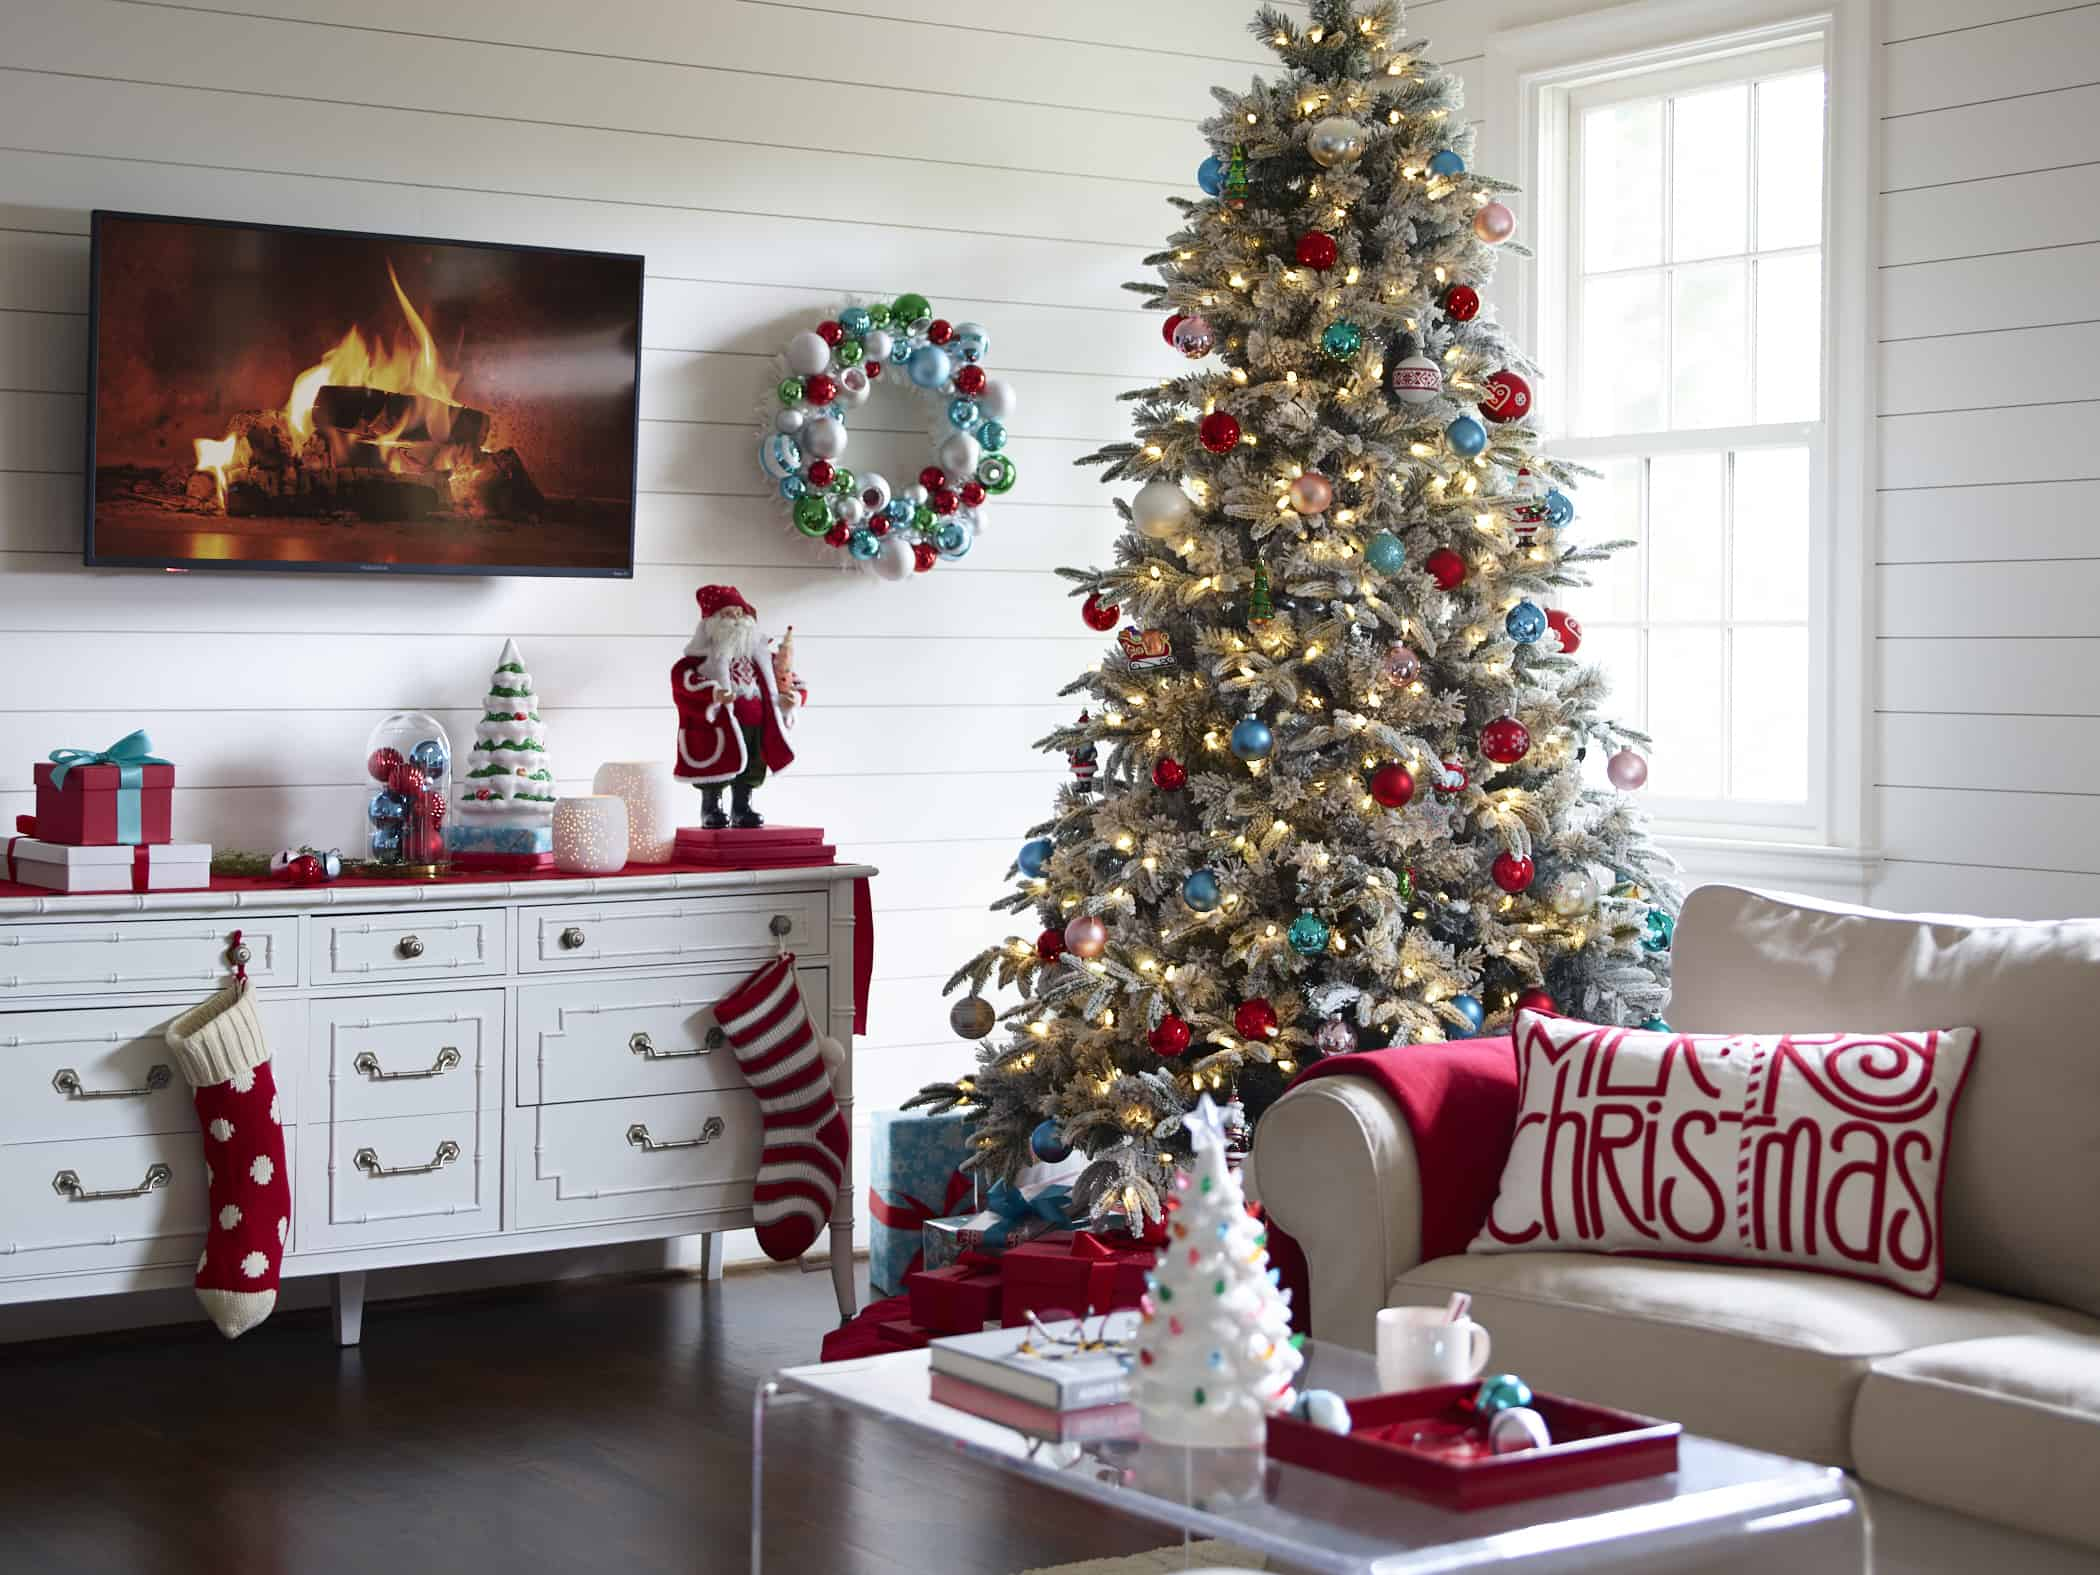 Whats Trending For Christmas 2020 What's trending? Your guide to decking the halls this holiday